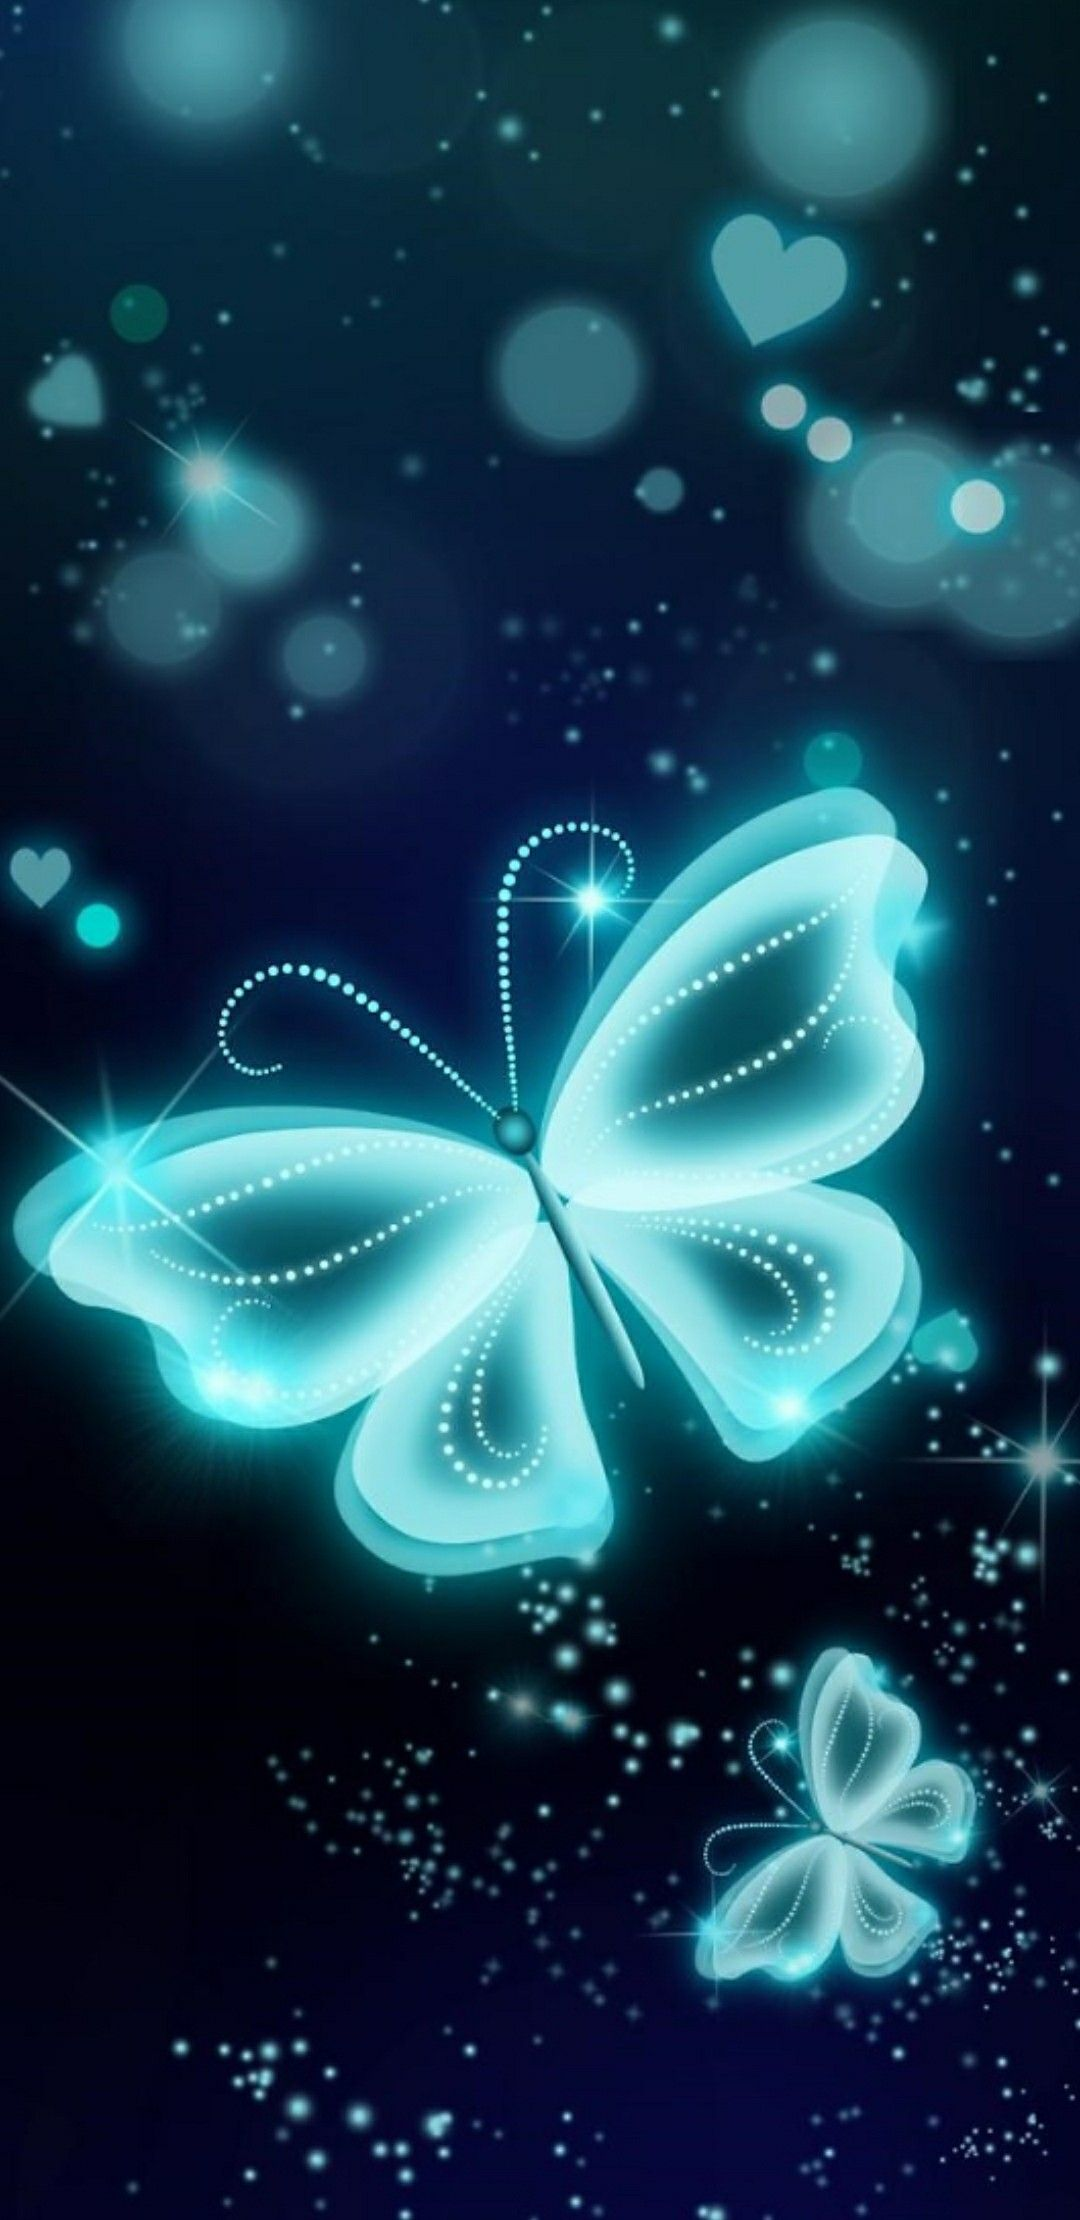 Pin By Nicole Budka On Glow Neon Backgrounds Butterfly Wallpaper Black Wallpaper Iphone Backgrounds Phone Wallpapers